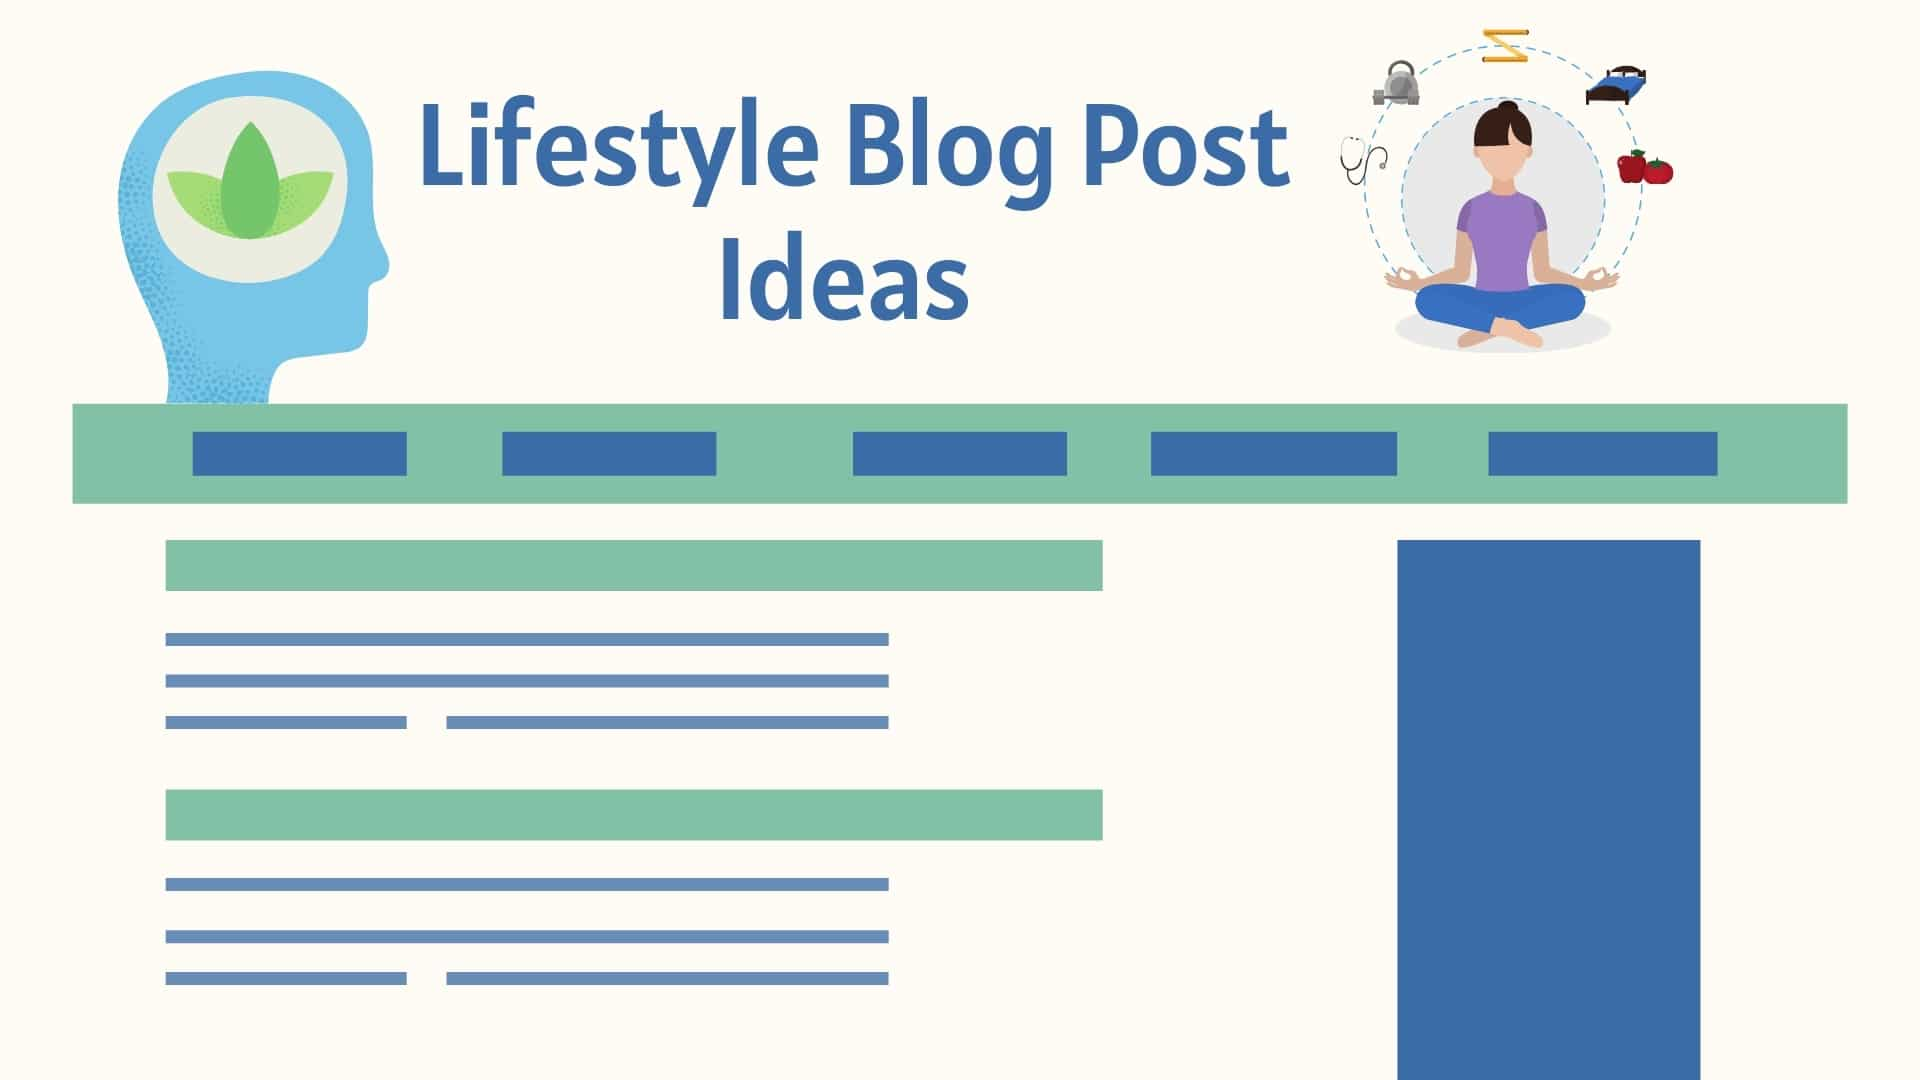 Lifestyle Blog Post Ideas - Find Lifestyle Blog Topic Ideas and Blog Post Ideas to Write About